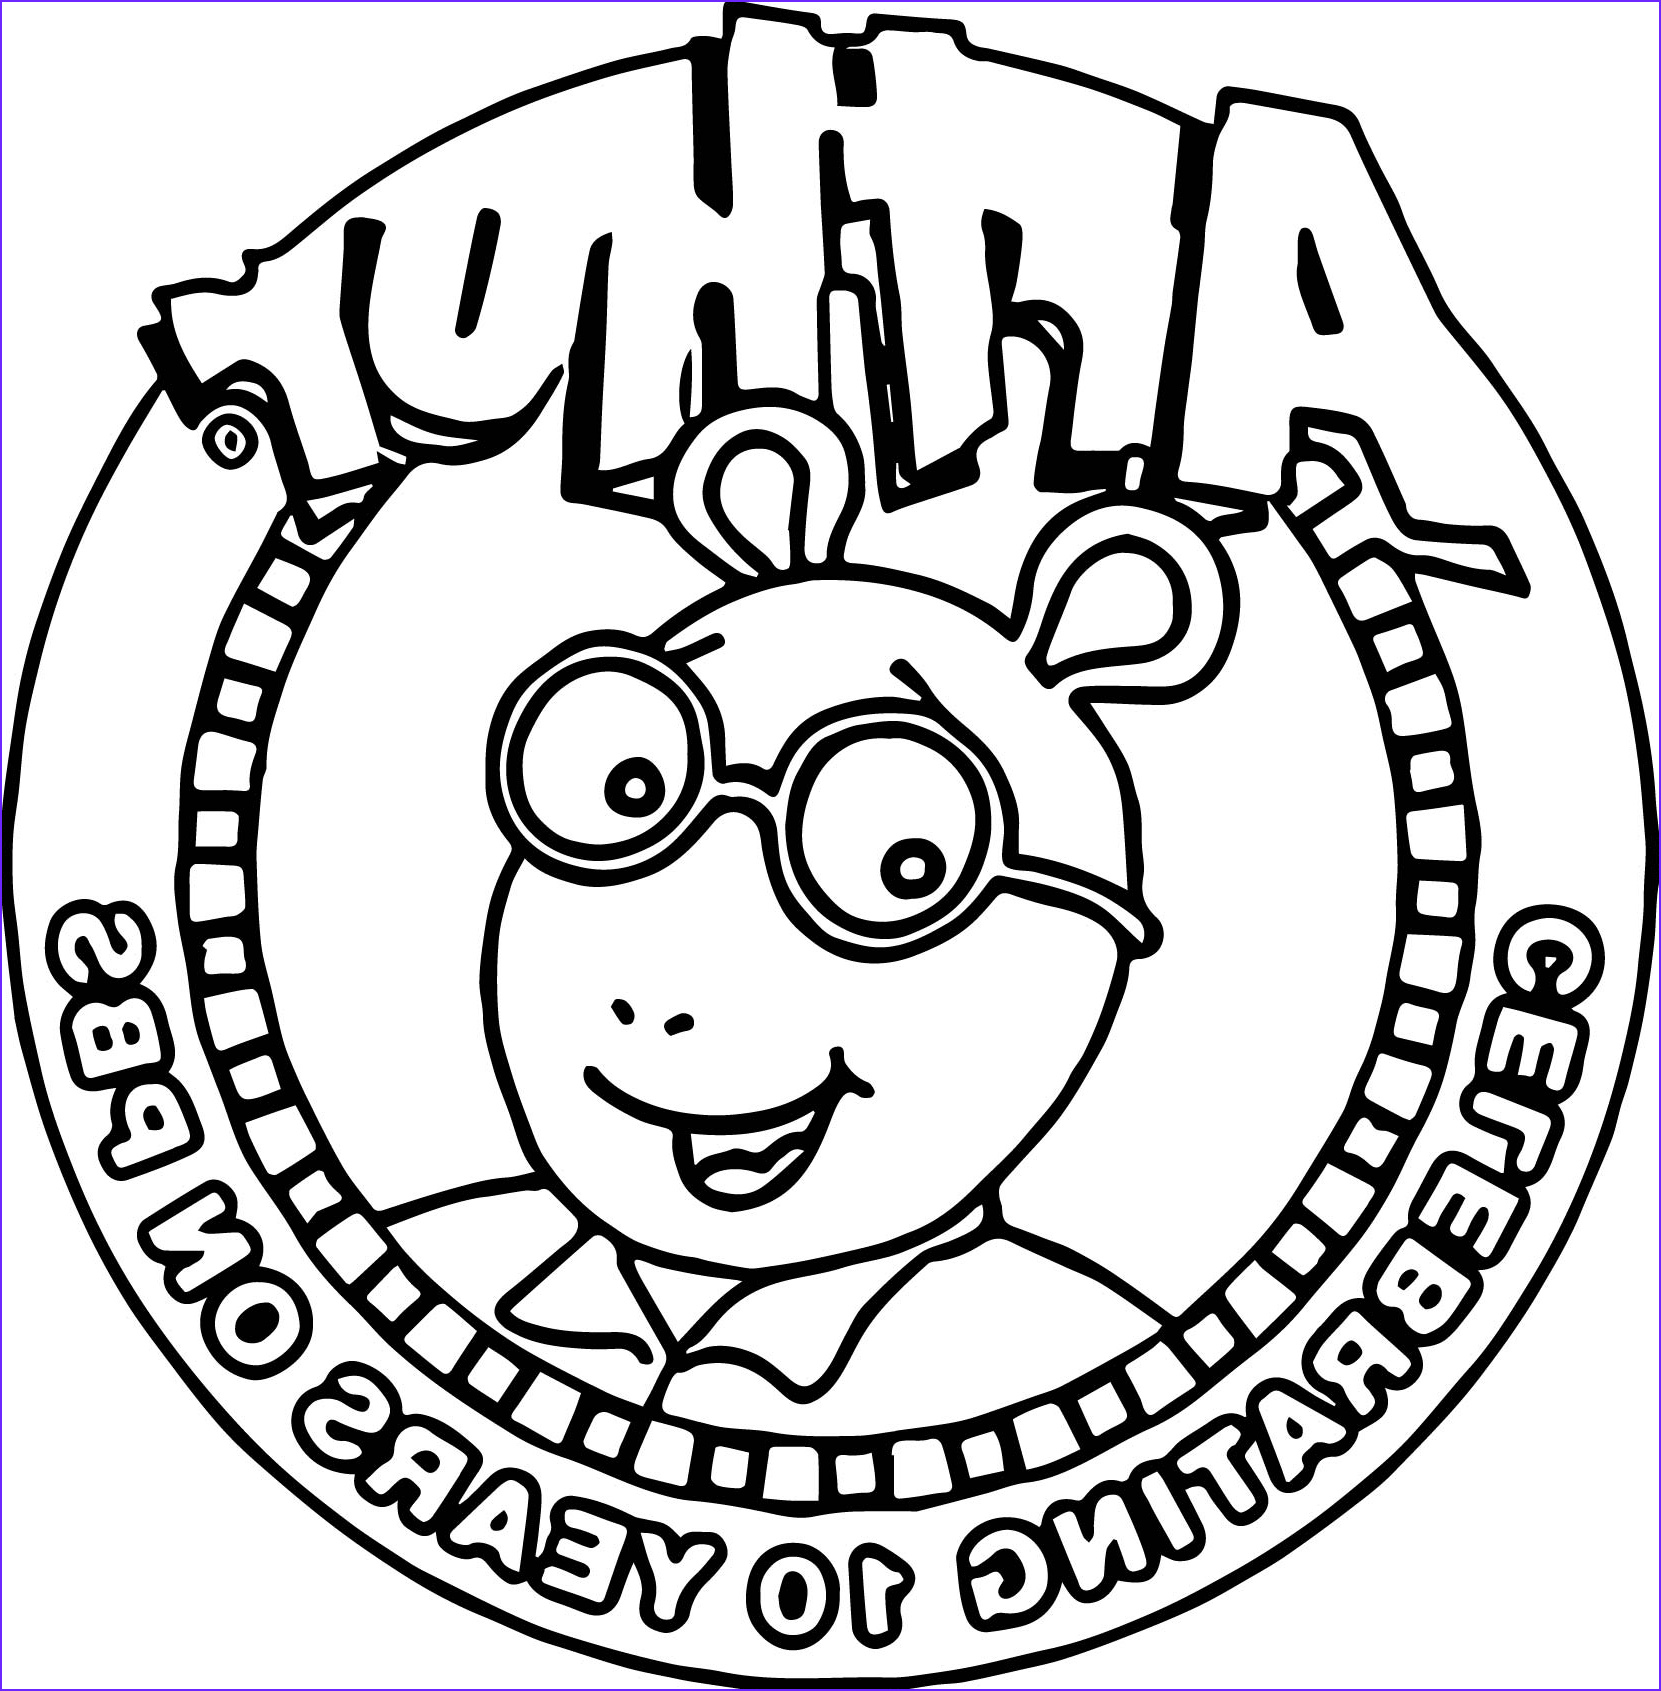 Pbs Coloring Pages Awesome Collection Arthur Ten Years Pbs Coloring Page